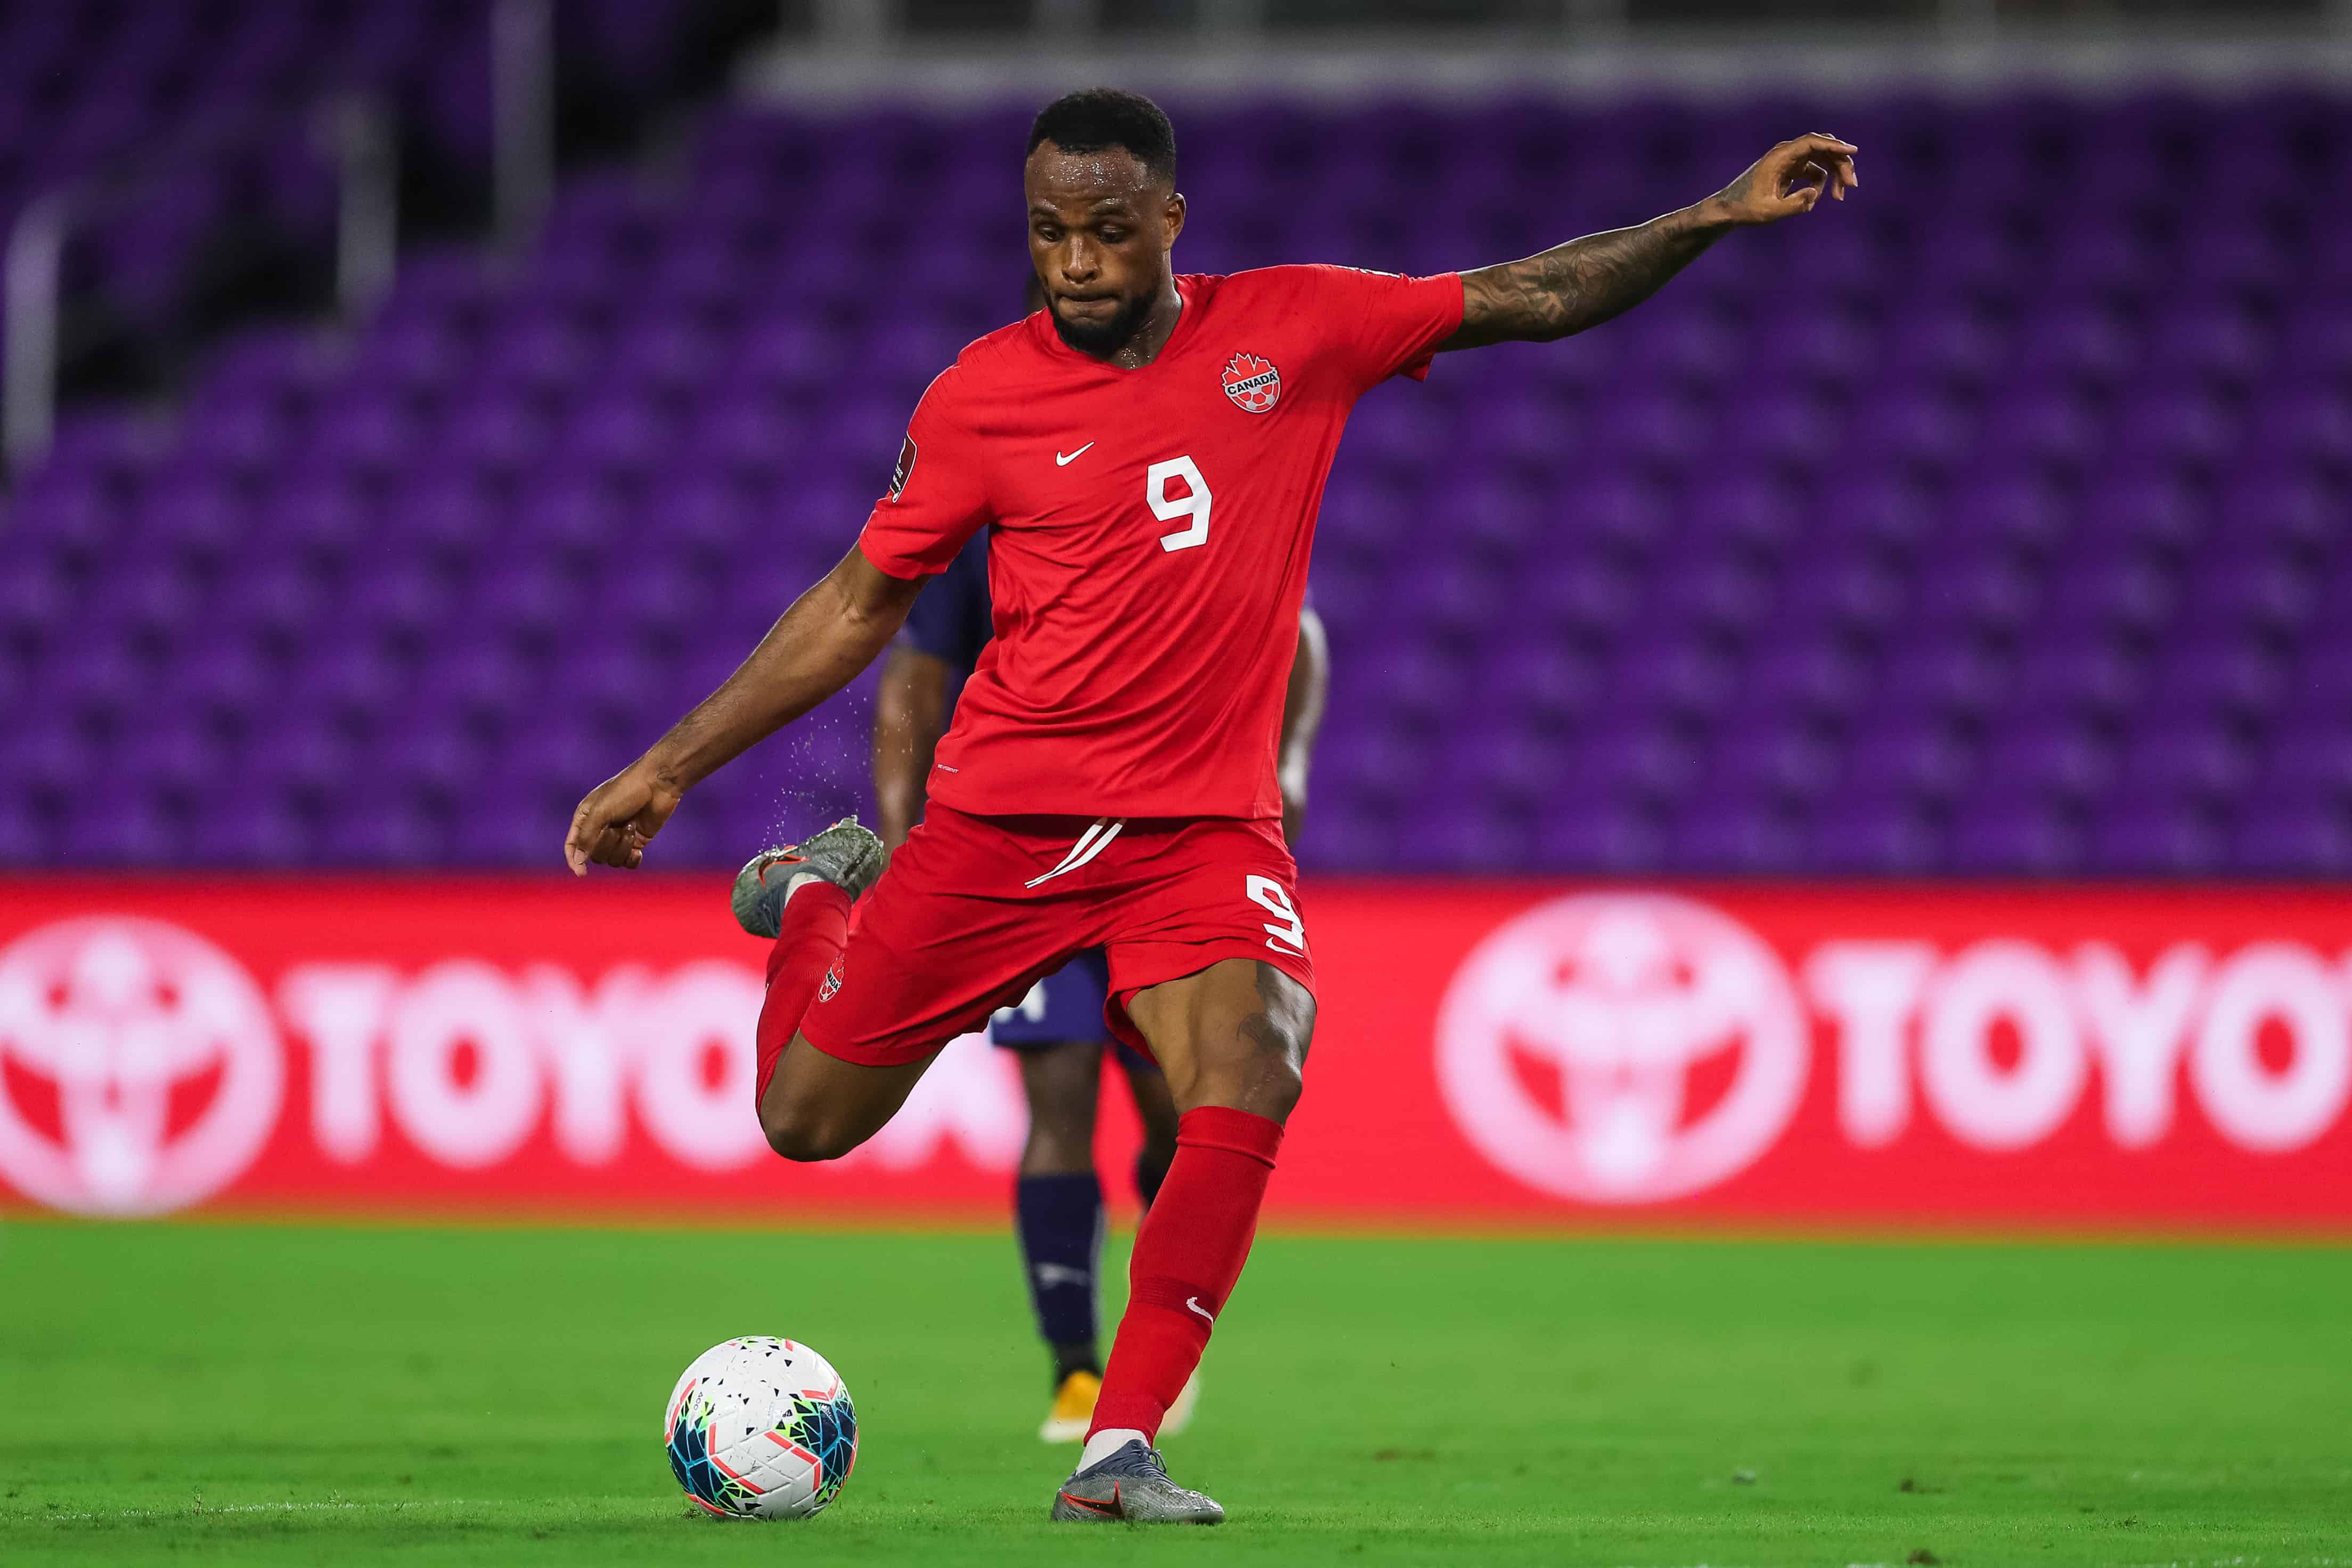 The Third Sub Episode 81: CanMNT cruises vs Bermuda, get set for Cayman Islands, while CanM23s prepare for Mexico after draw vs